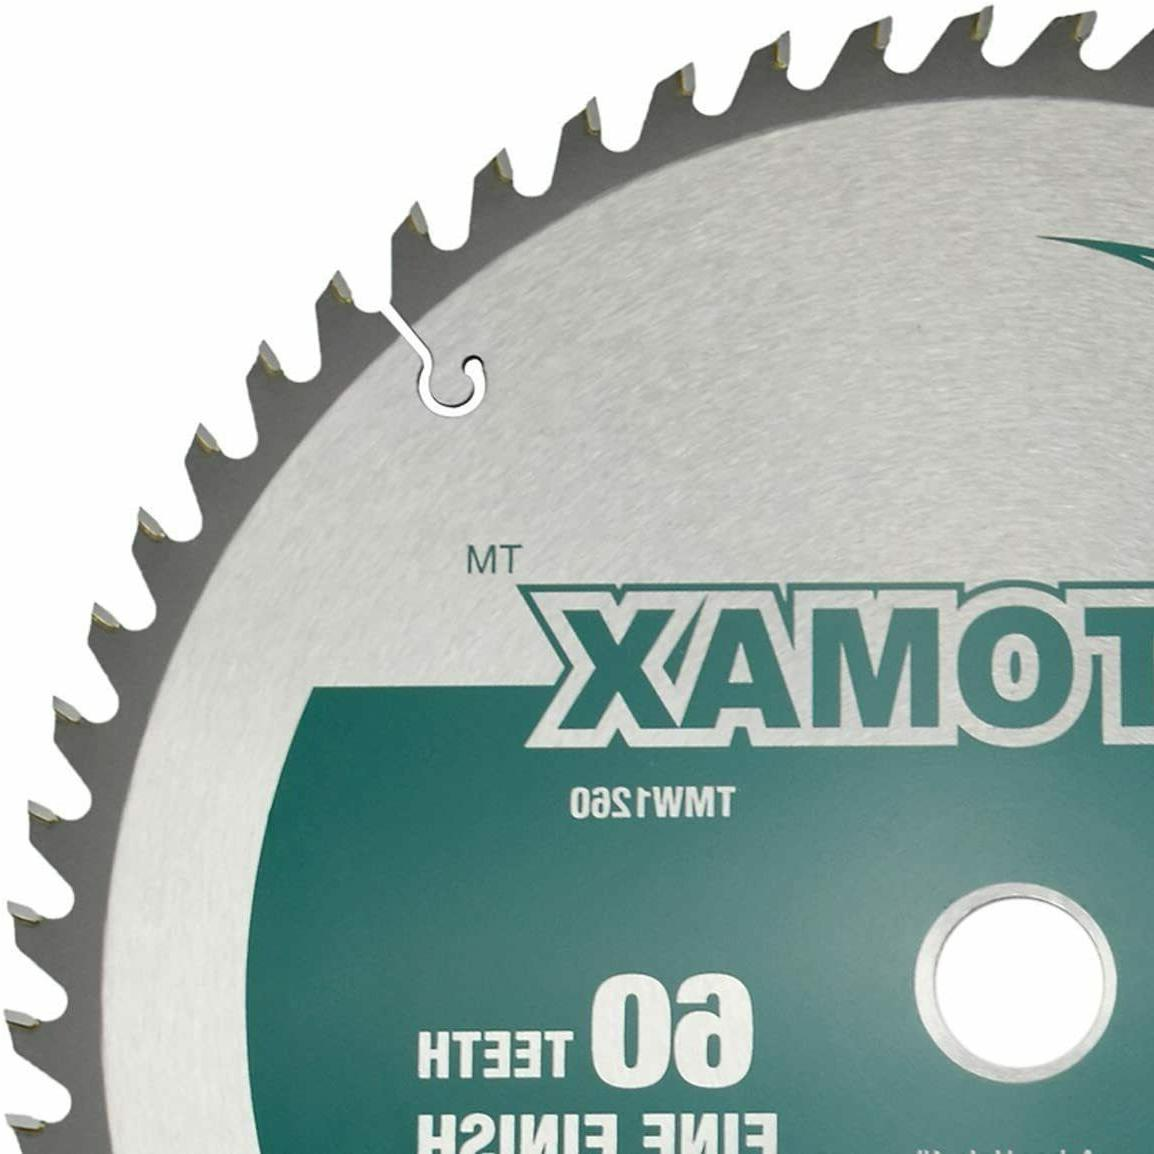 TOMAX Tooth General Saw Blade